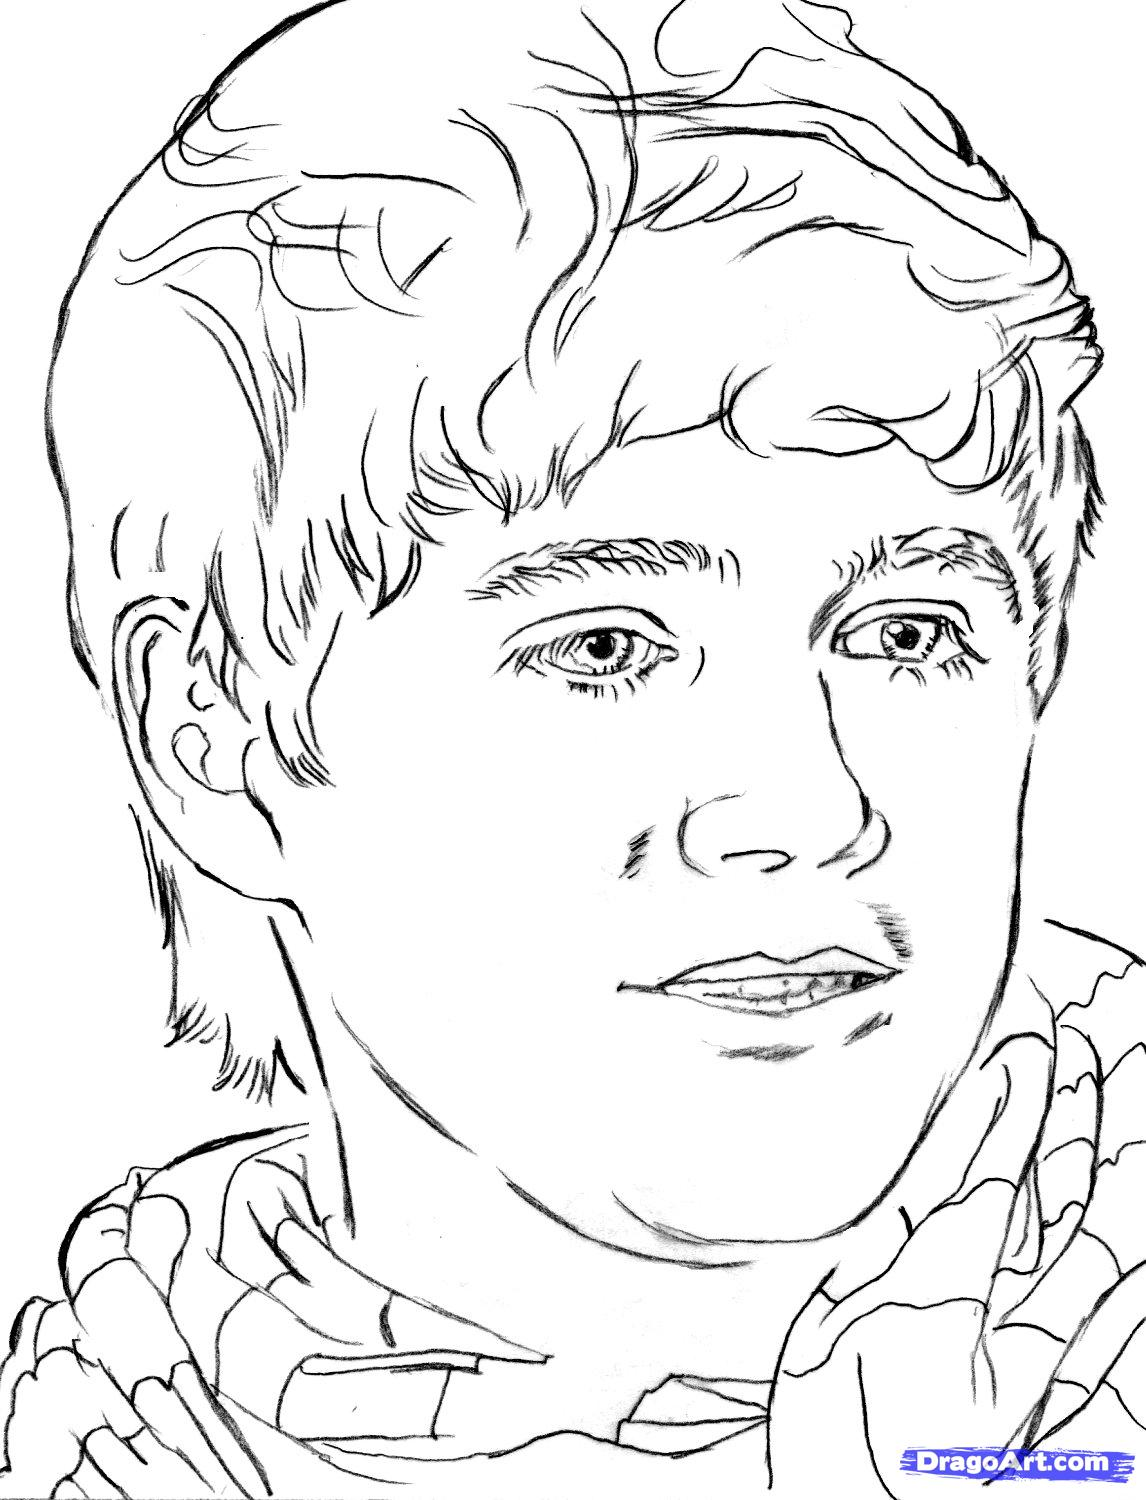 One Direction Printable Coloring Pages at GetColorings.com